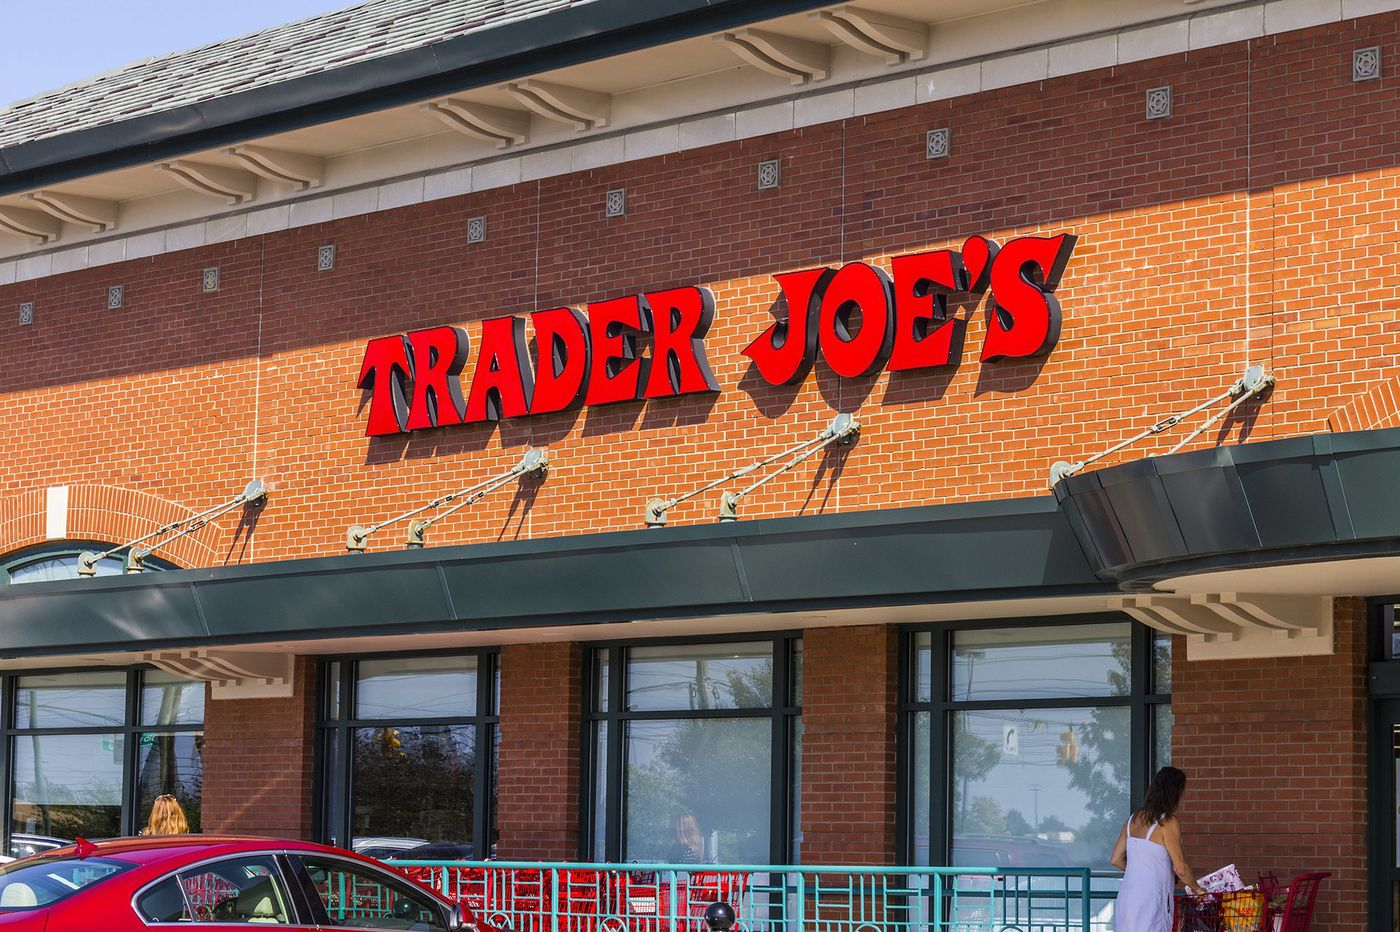 Hey, Trader Joe's: Less plastic with my food, please   Opinion